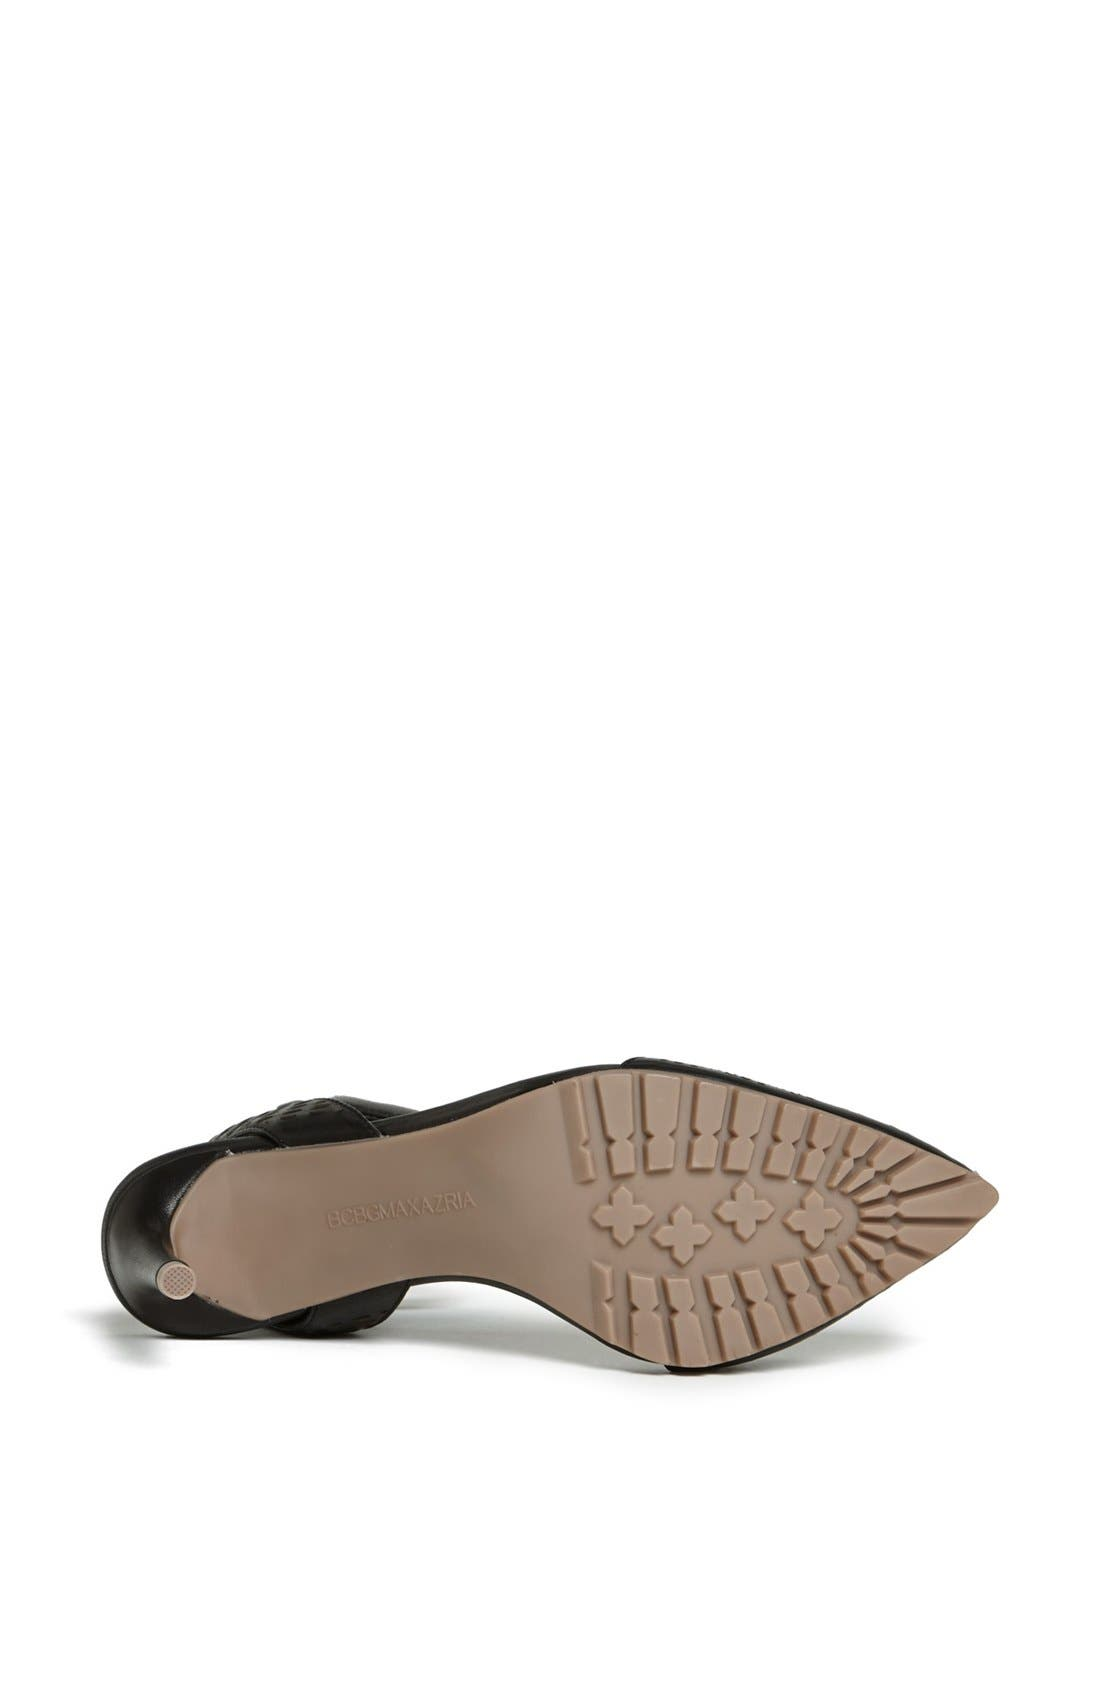 Alternate Image 3  - BCBGMAXAZRIA 'Coll' Perforated Leather Ankle Strap Sandal